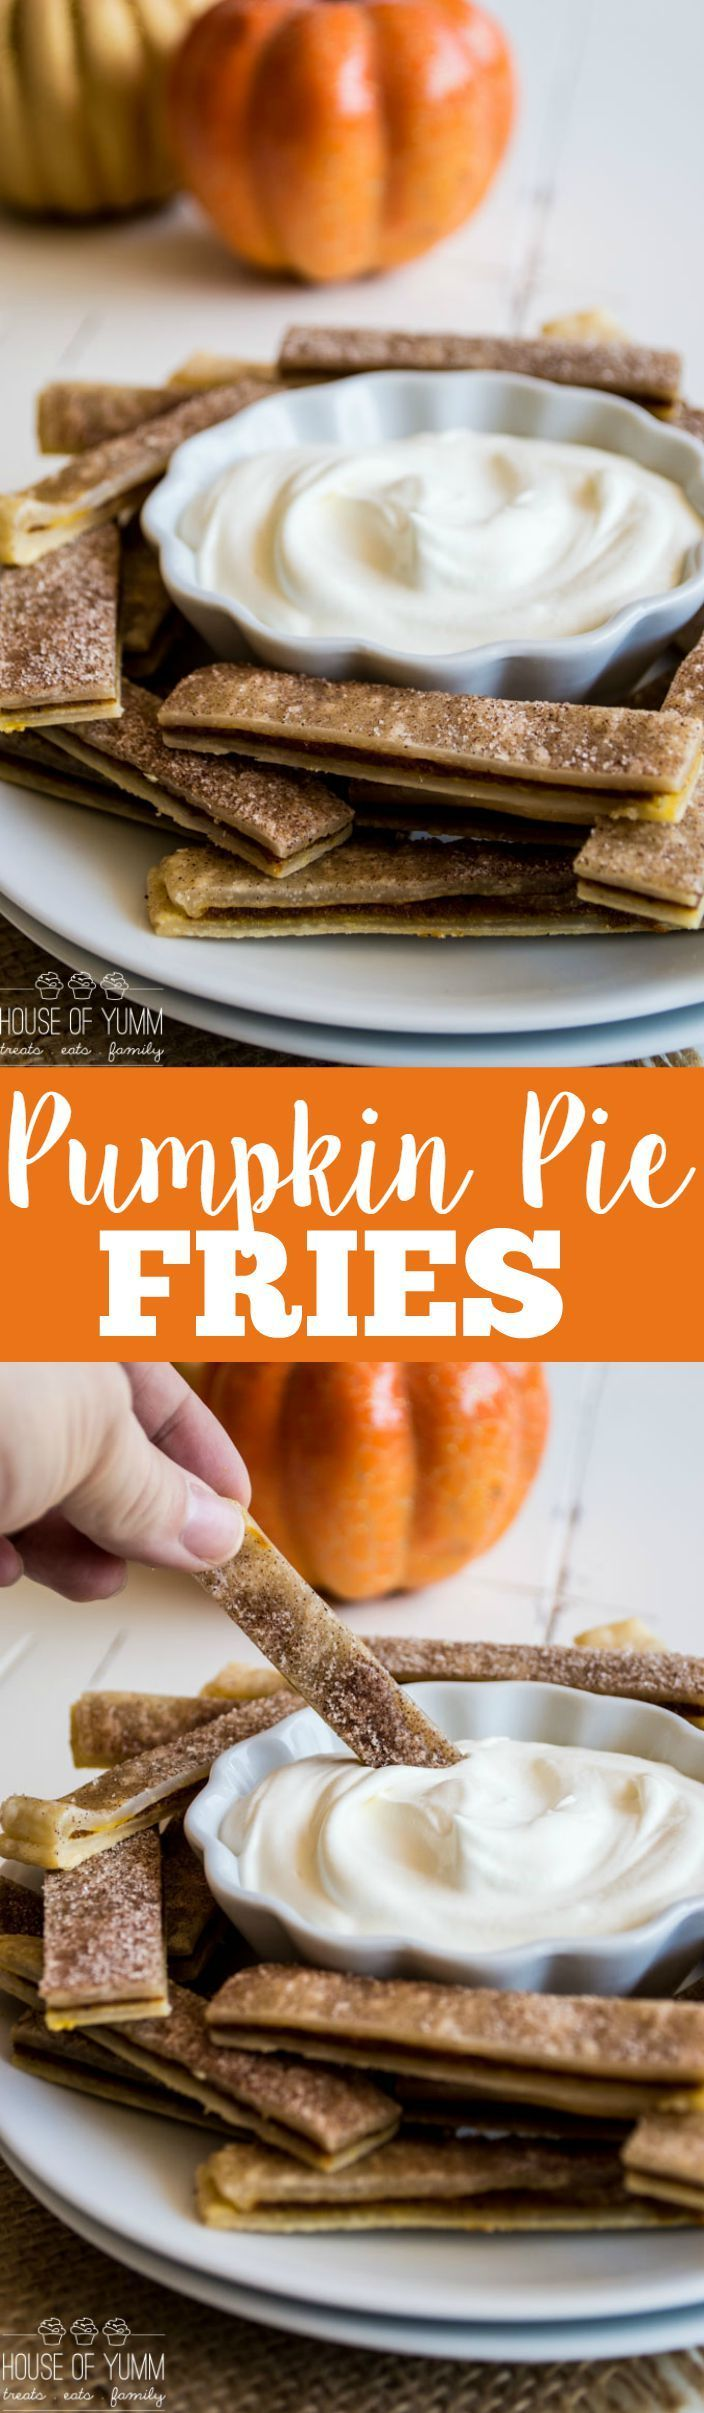 Seriously EASY to make Pumpkin Pie Fries served with whipped cream for dipping!